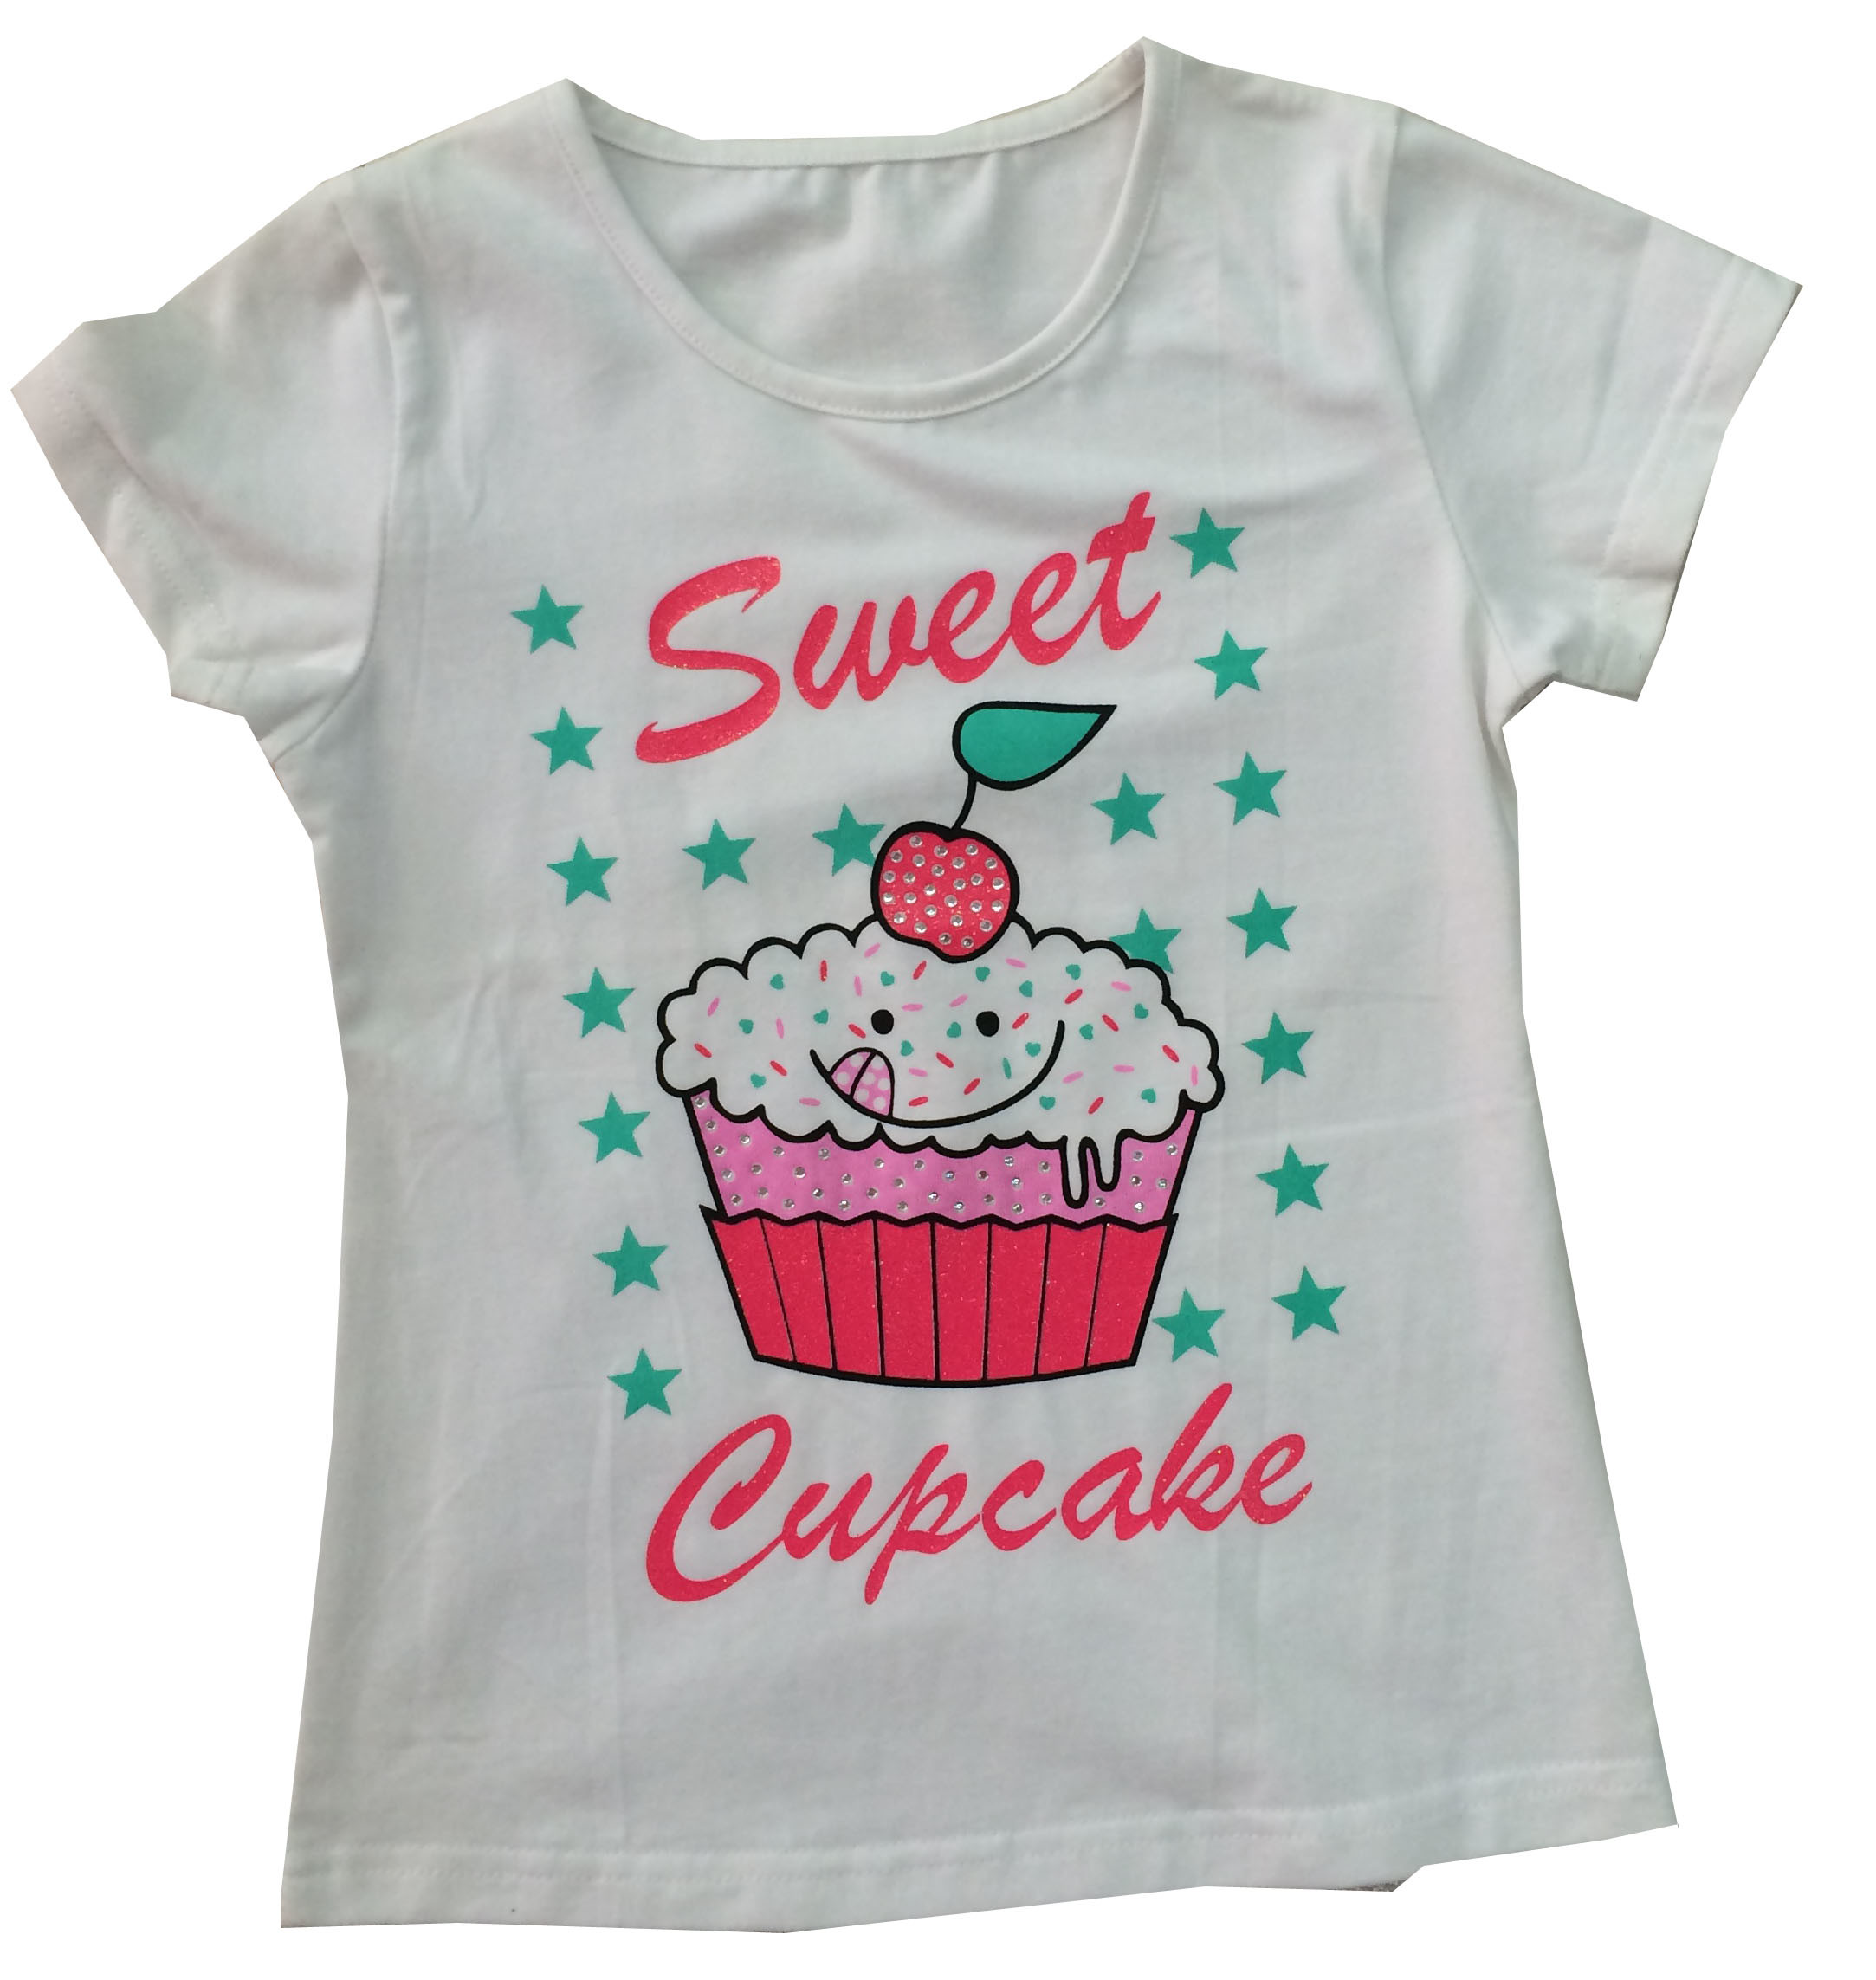 China wholesale girl kids children models cotton round for Wholesale t shirt printing china